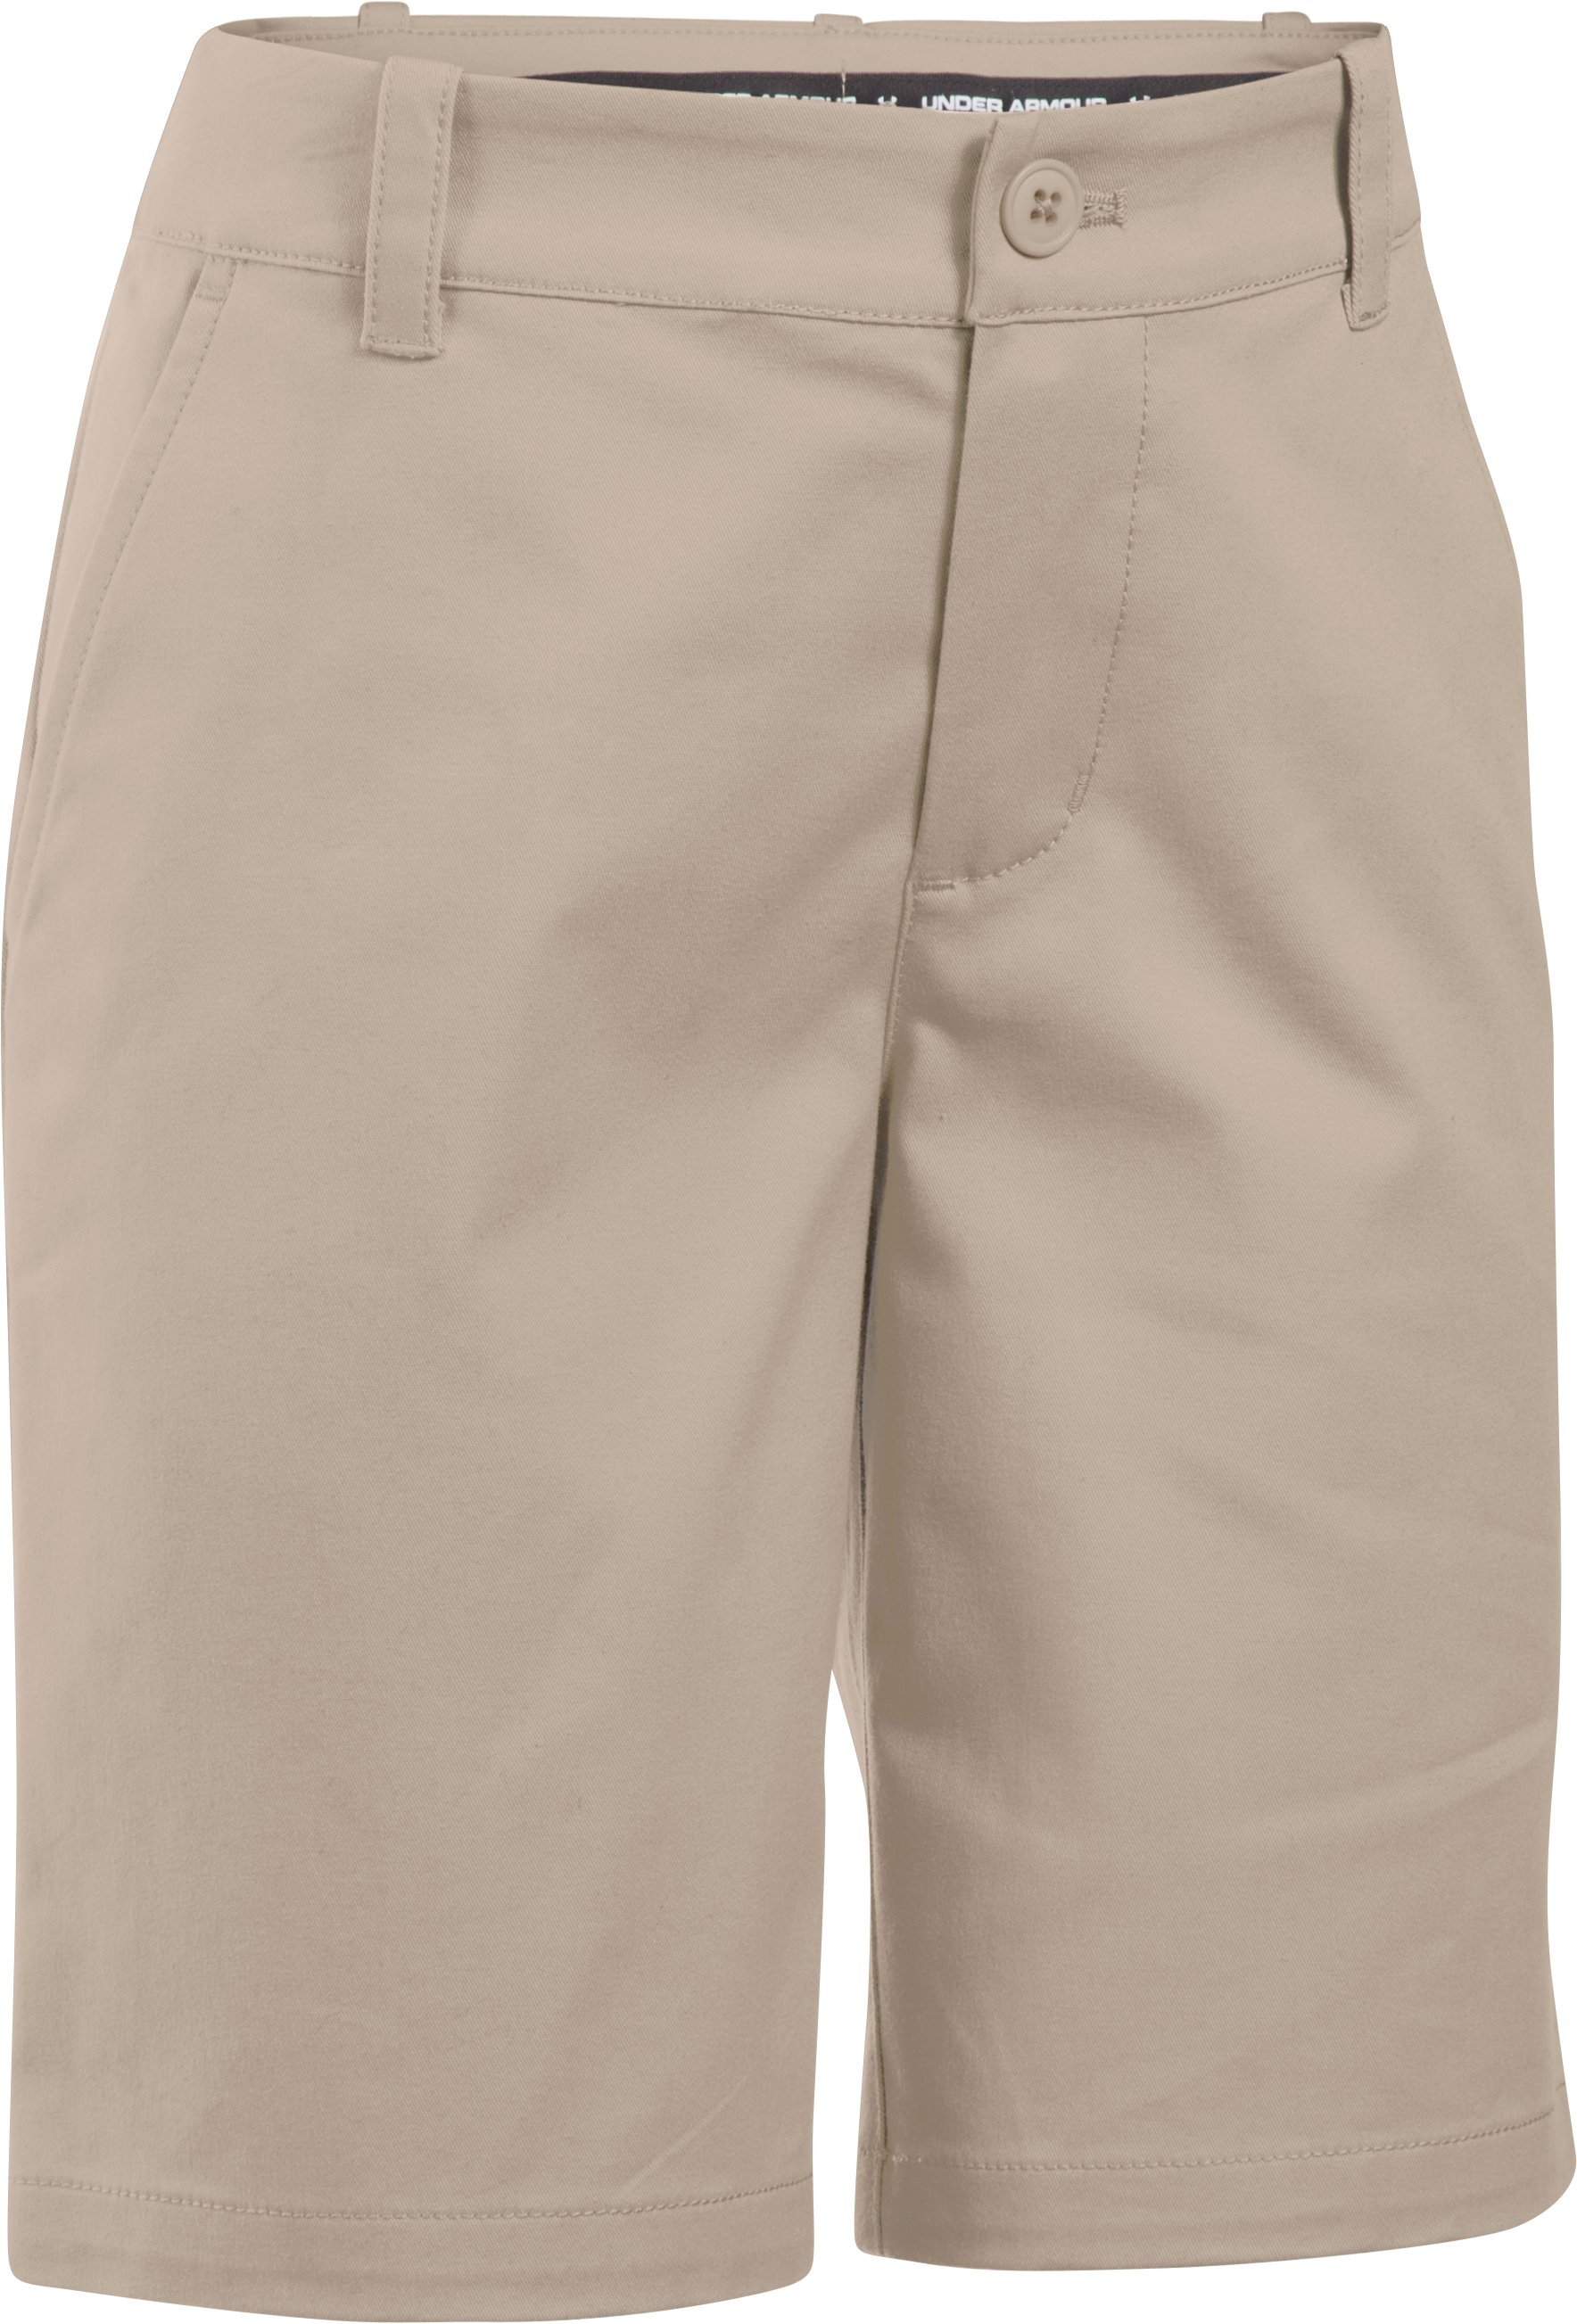 Girls' UA Uniform Chino Shorts, Desert Sand, undefined